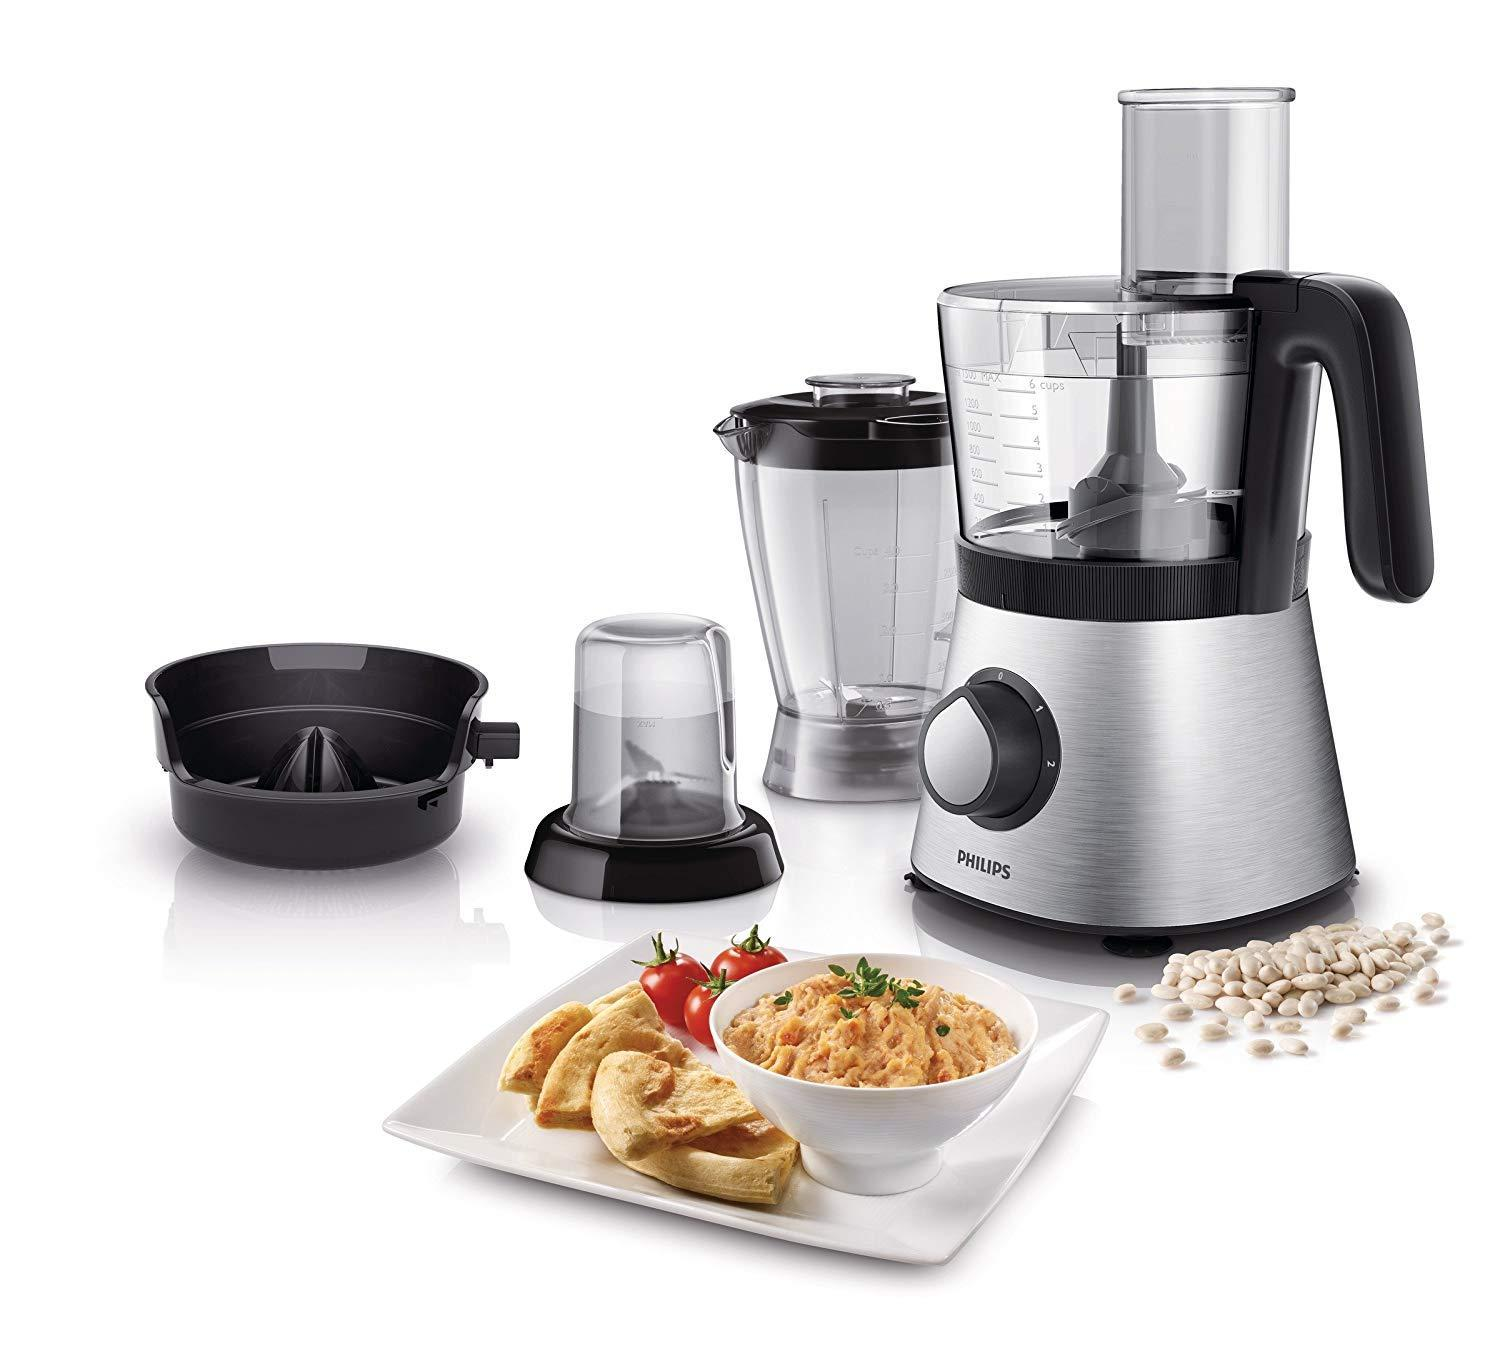 Philips test HR Food processor